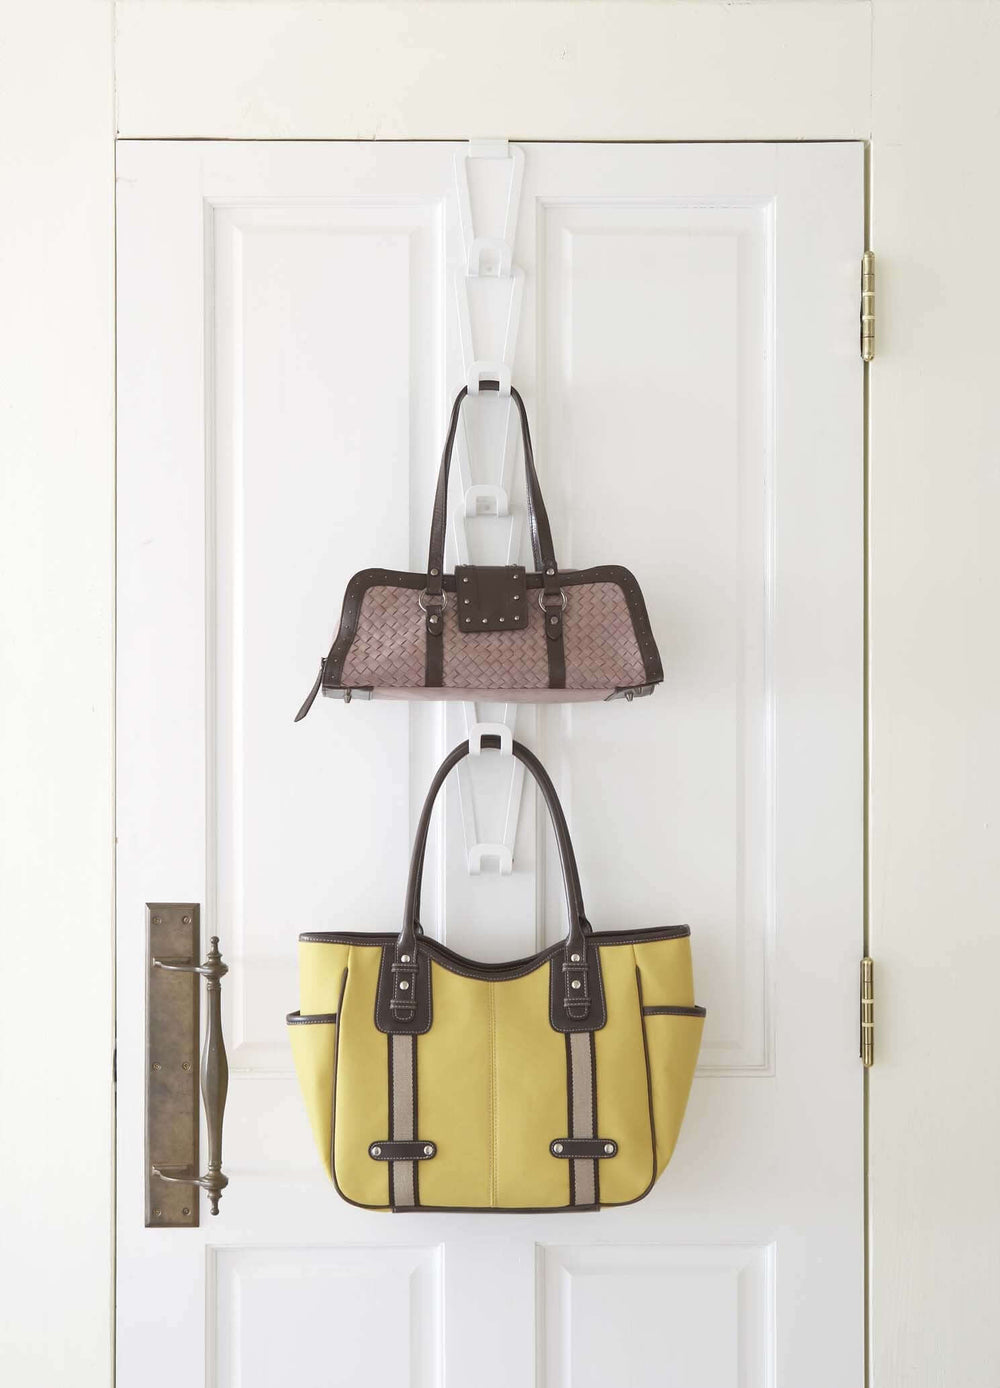 Handbags displayed hanging outside a door using Yamazaki's chain link bag holder.